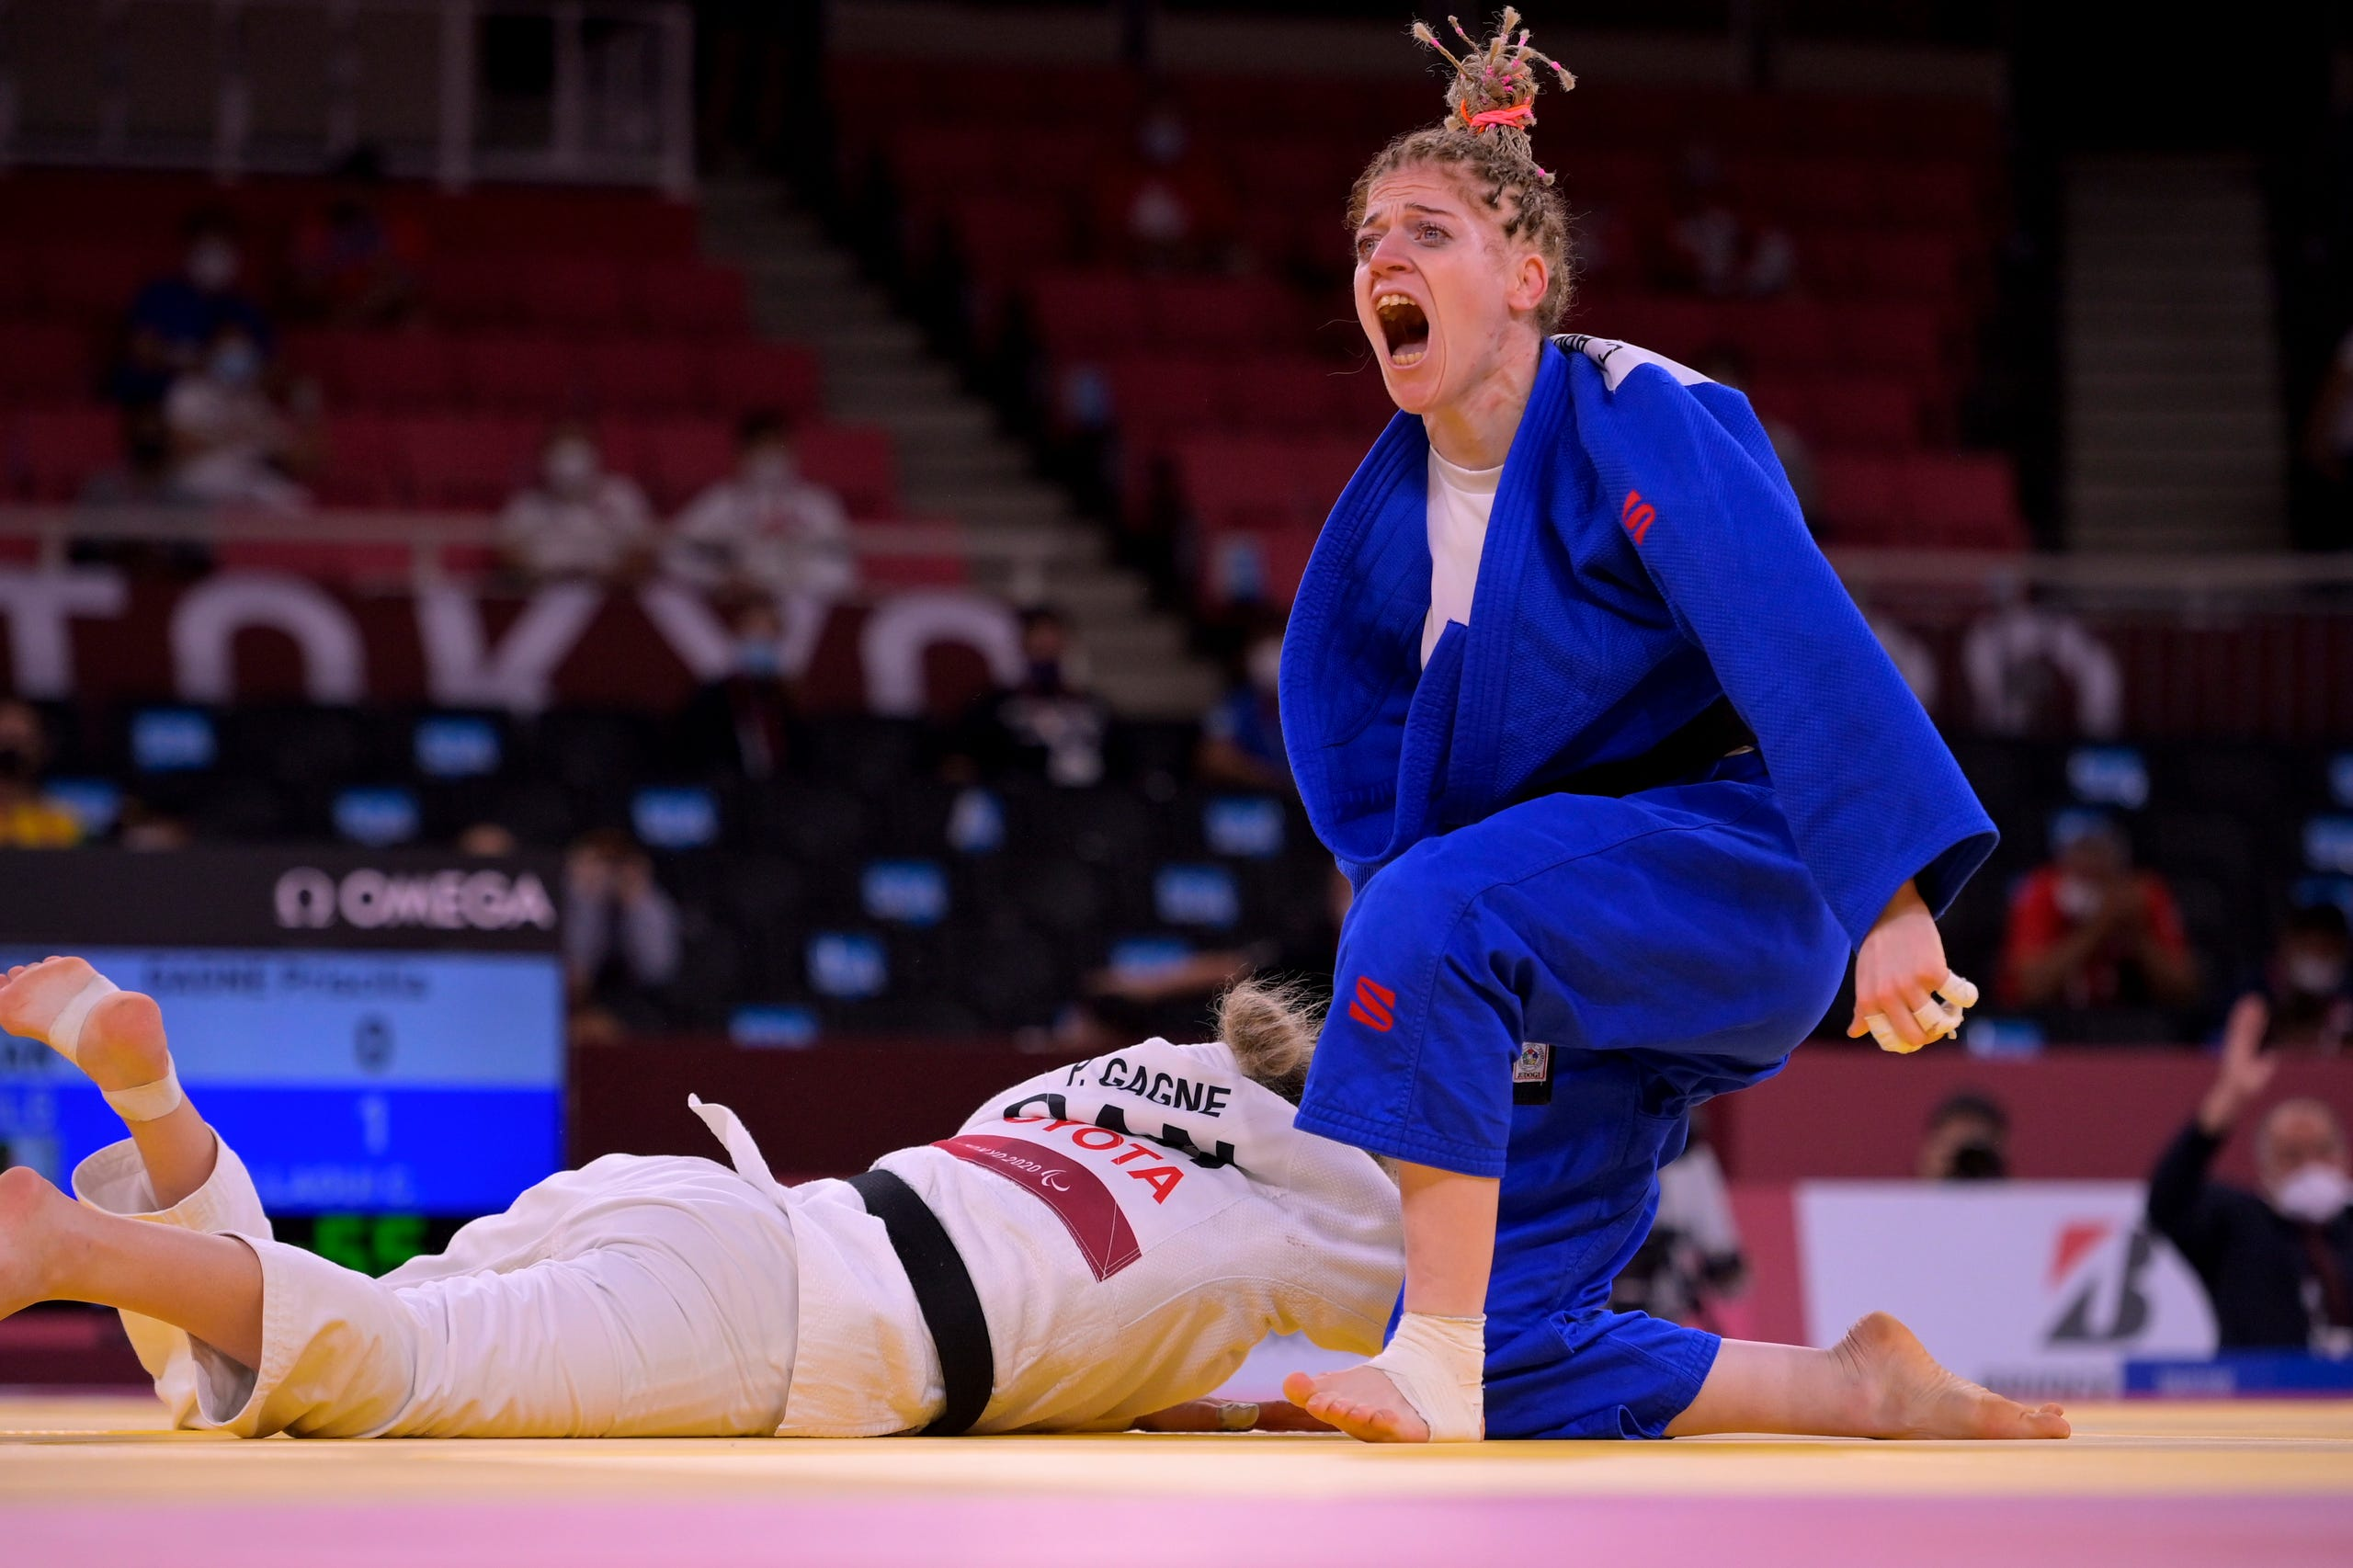 August 27, 2021: Cherine Abdellaoui of Team Algeria celebrates after winning in the Women's -52kg Judo  on day 3 of the Tokyo 2020 Paralympic Games at Nippon Budokan in Tokyo, Japan.